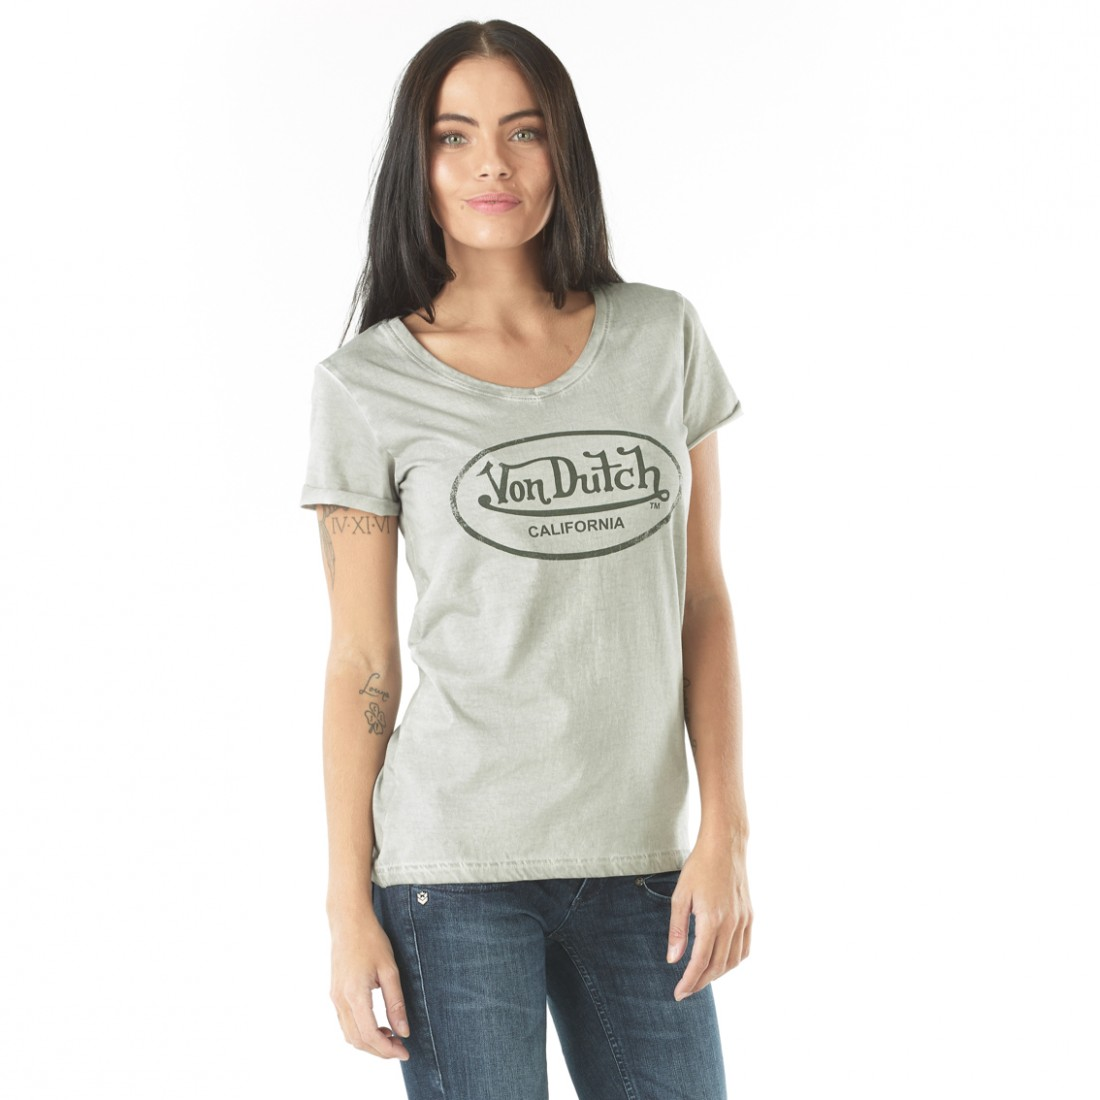 Tee-shirt Femme Von Dutch Casting Gris Clair